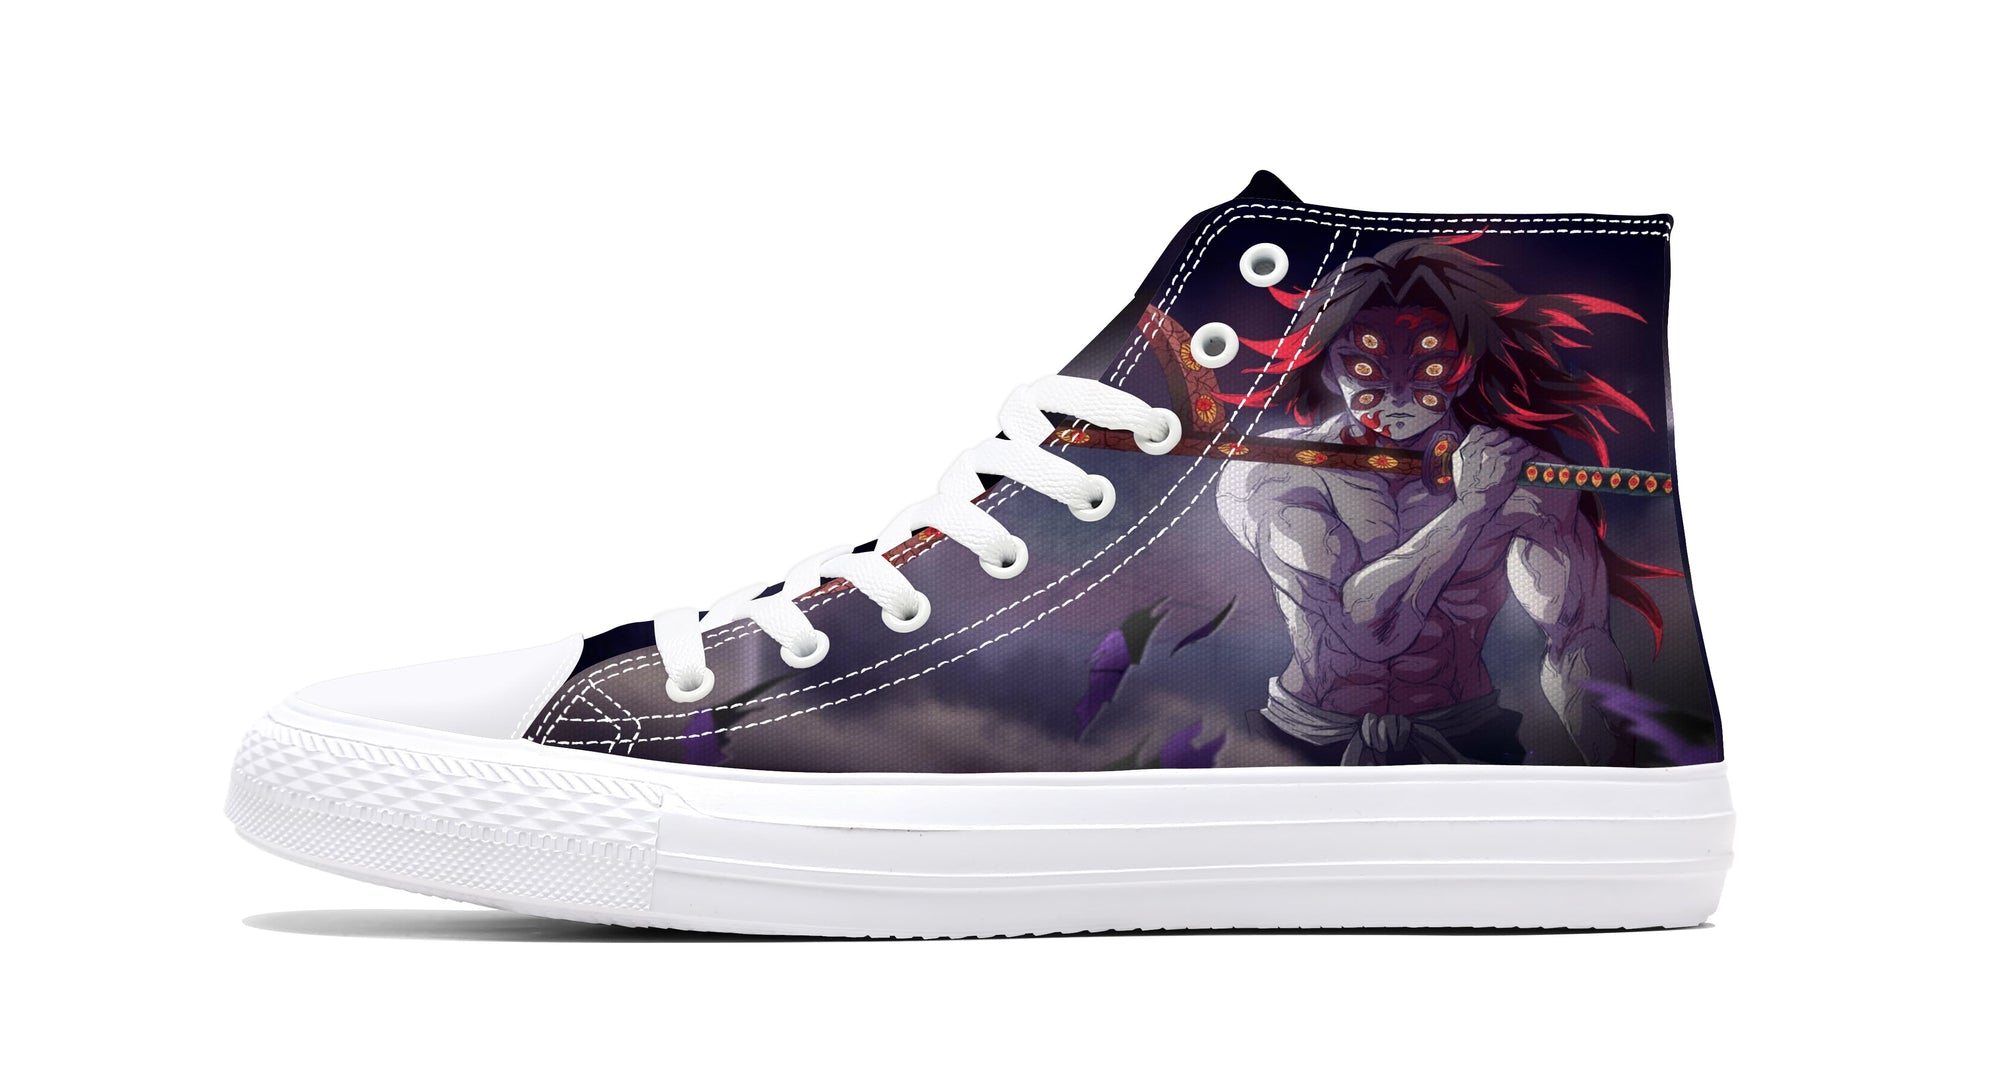 Kokushibou Upper Moon One Samurai Demon Sneaker Demon Slayer Kimetsu No Yaiba Shoes